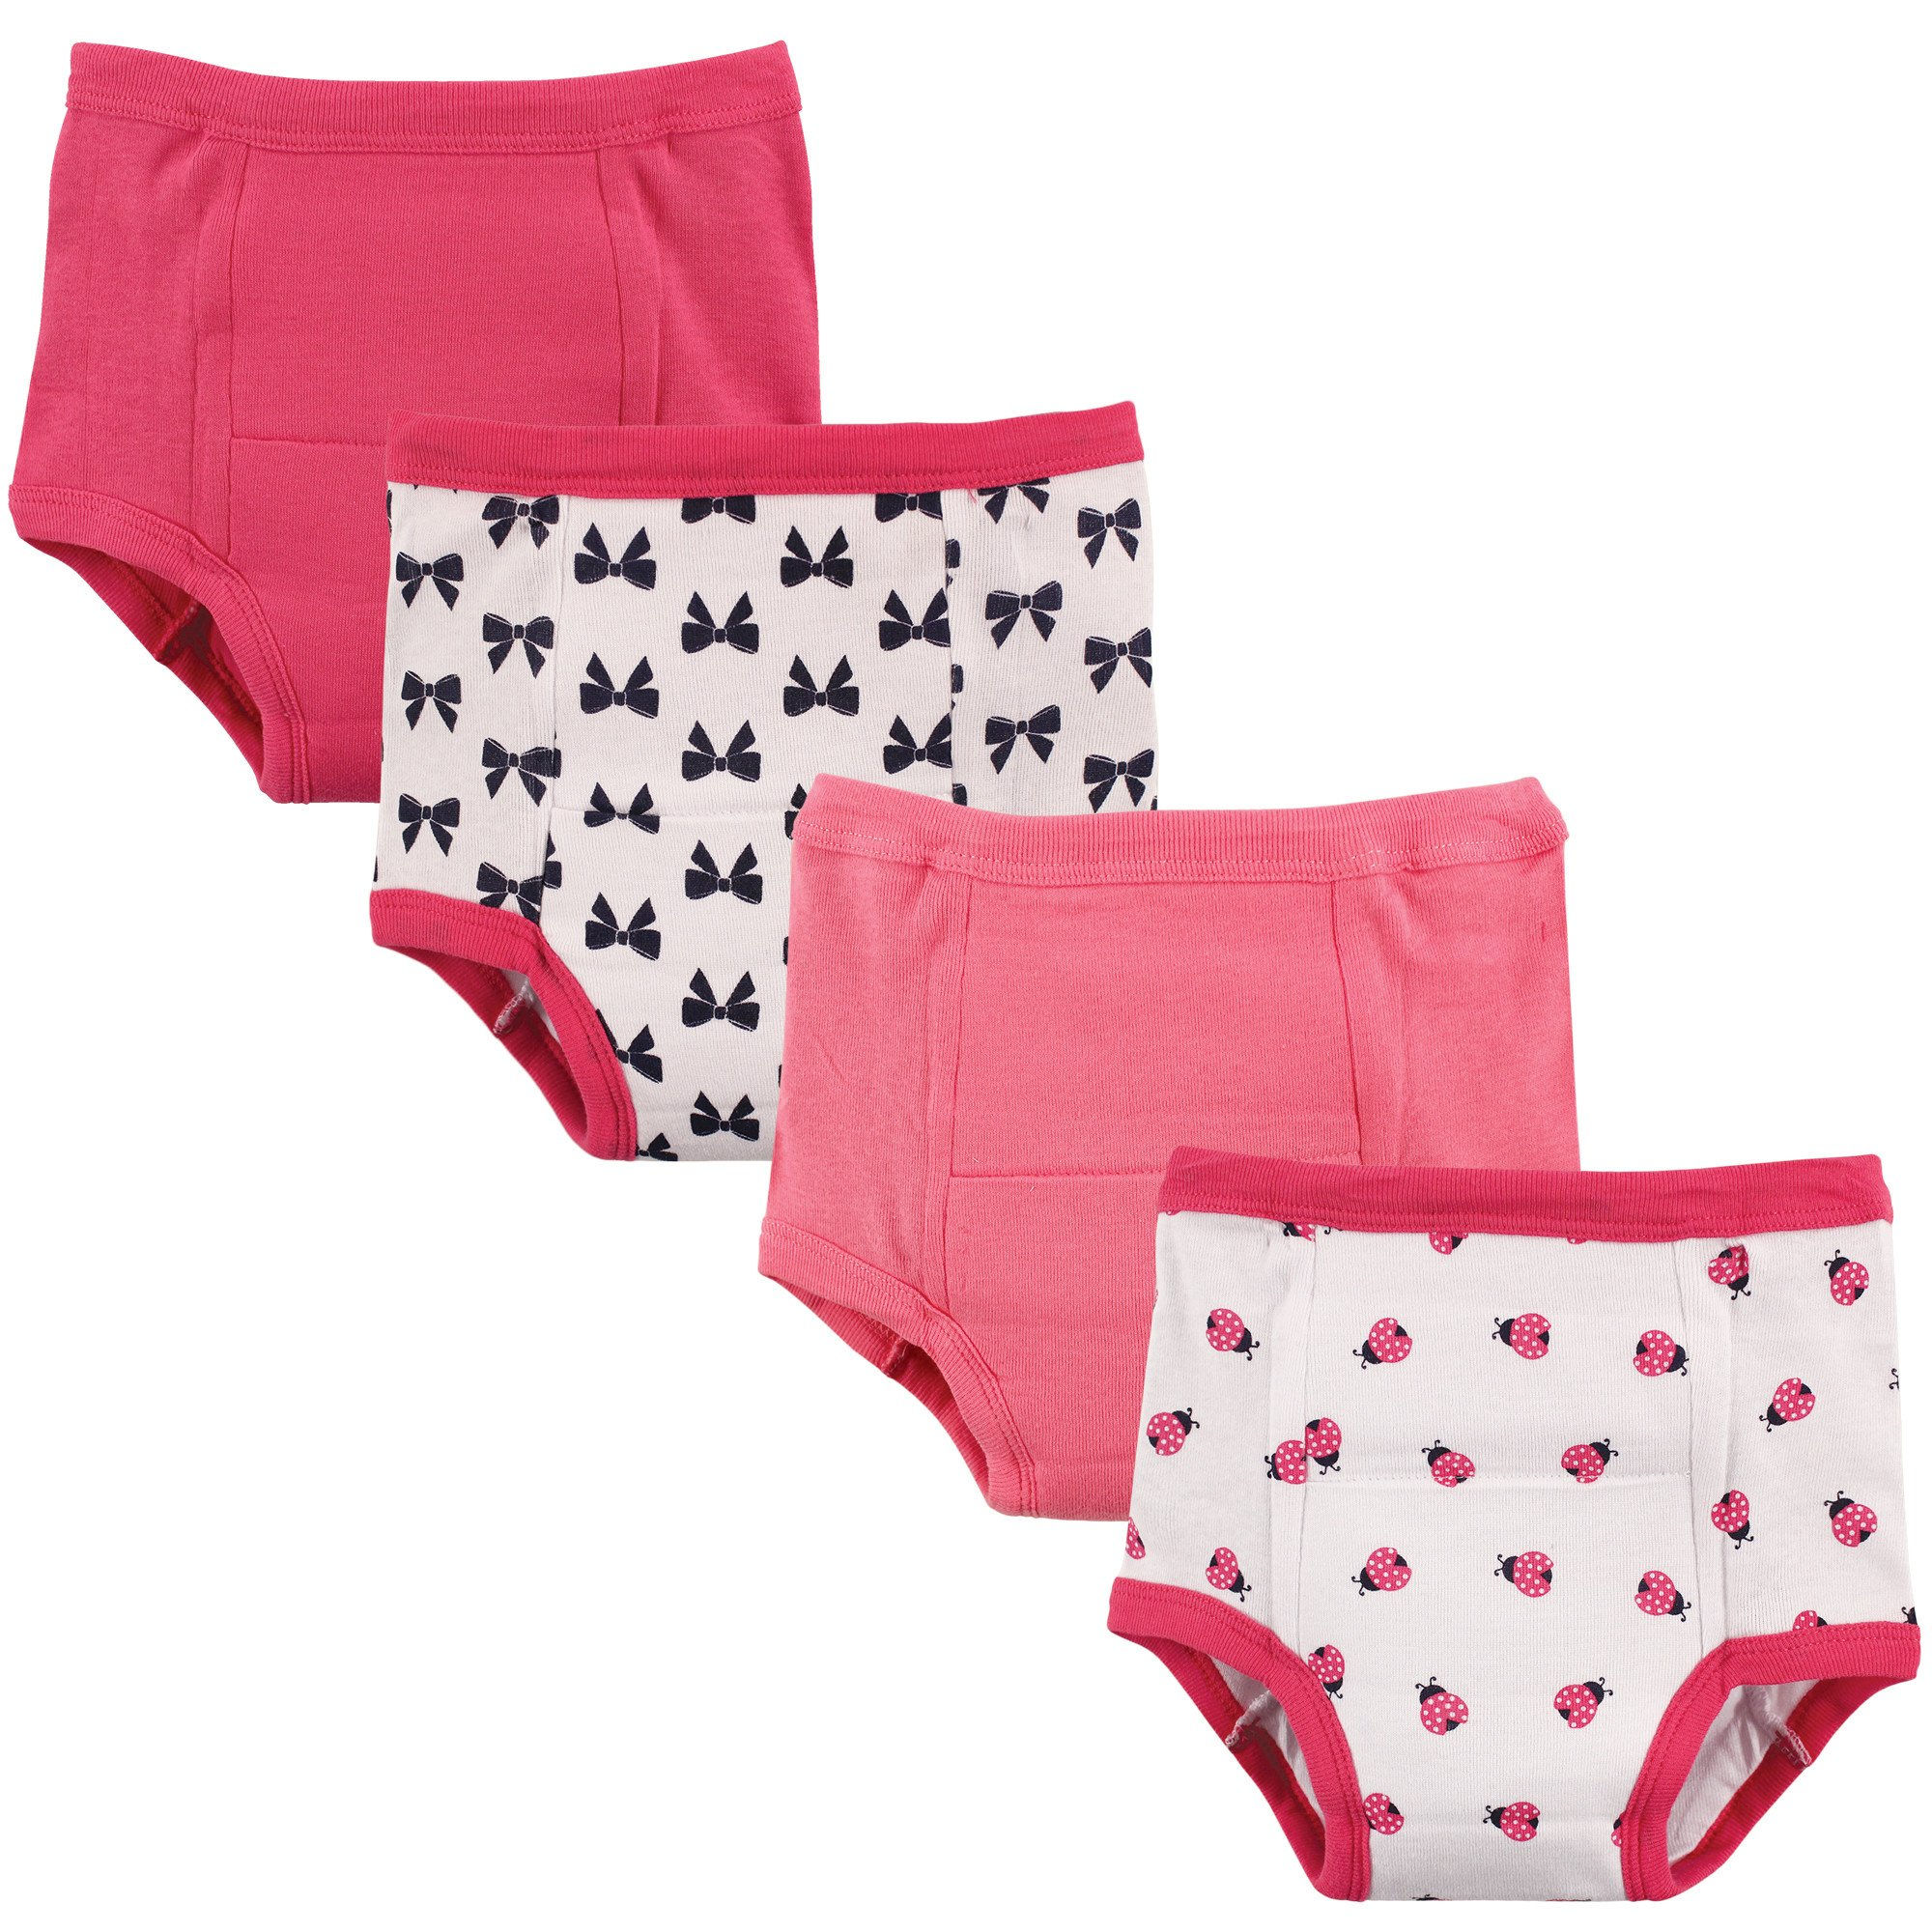 Luvable Friends Baby Cotton Training Pants, Girl Chevron 4Pk, 4T